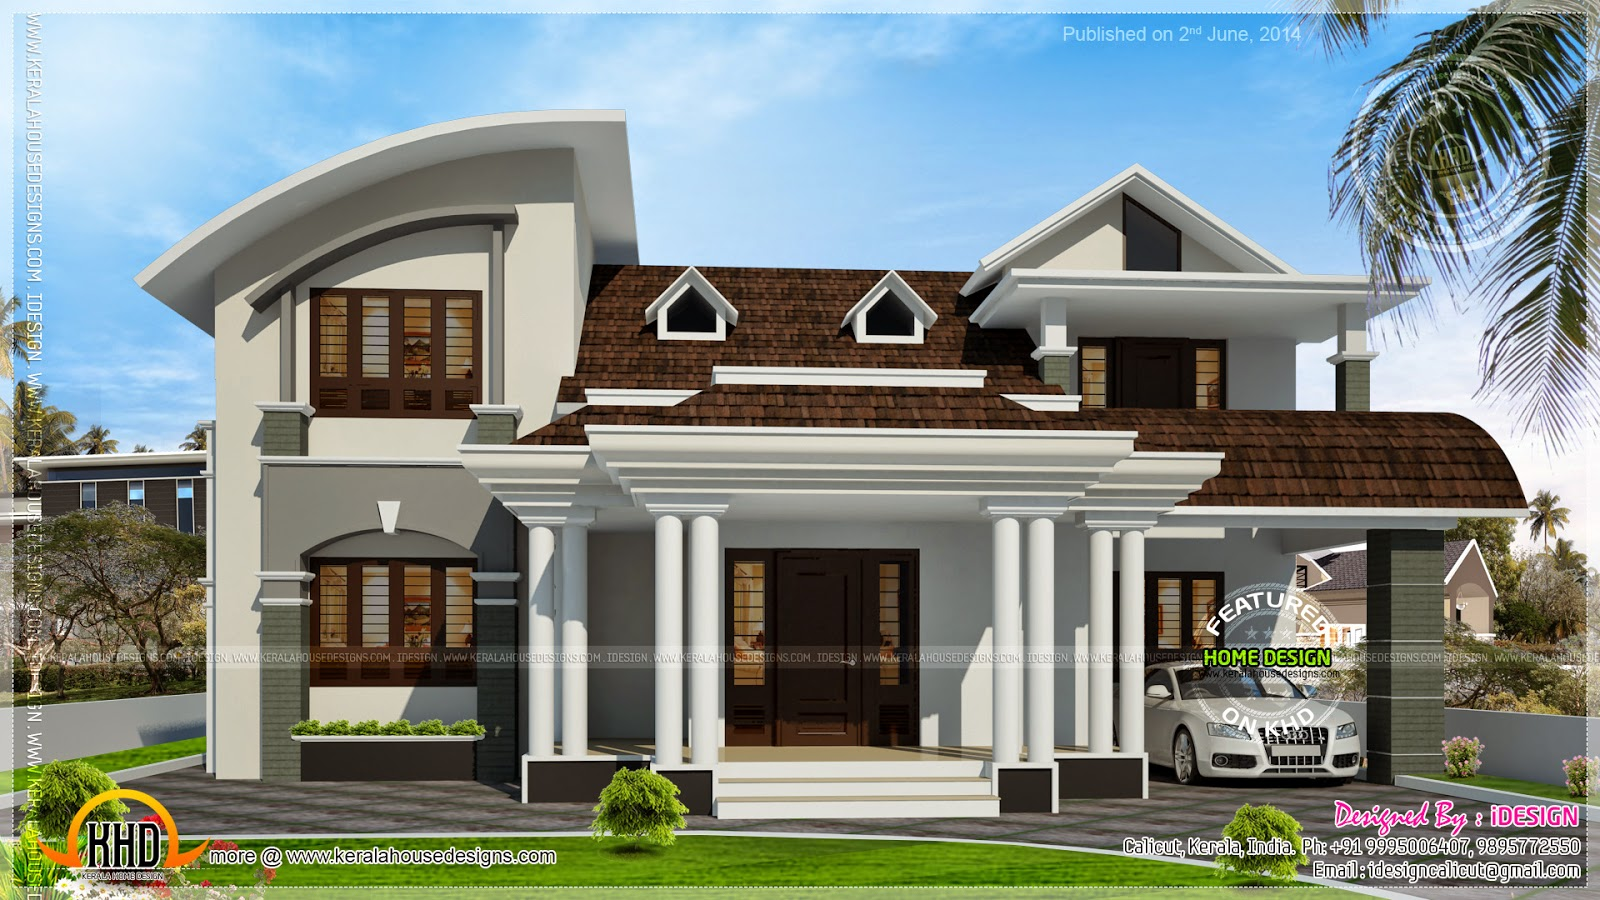 House with beautiful dormer windows kerala home design for Dormer house plans designs